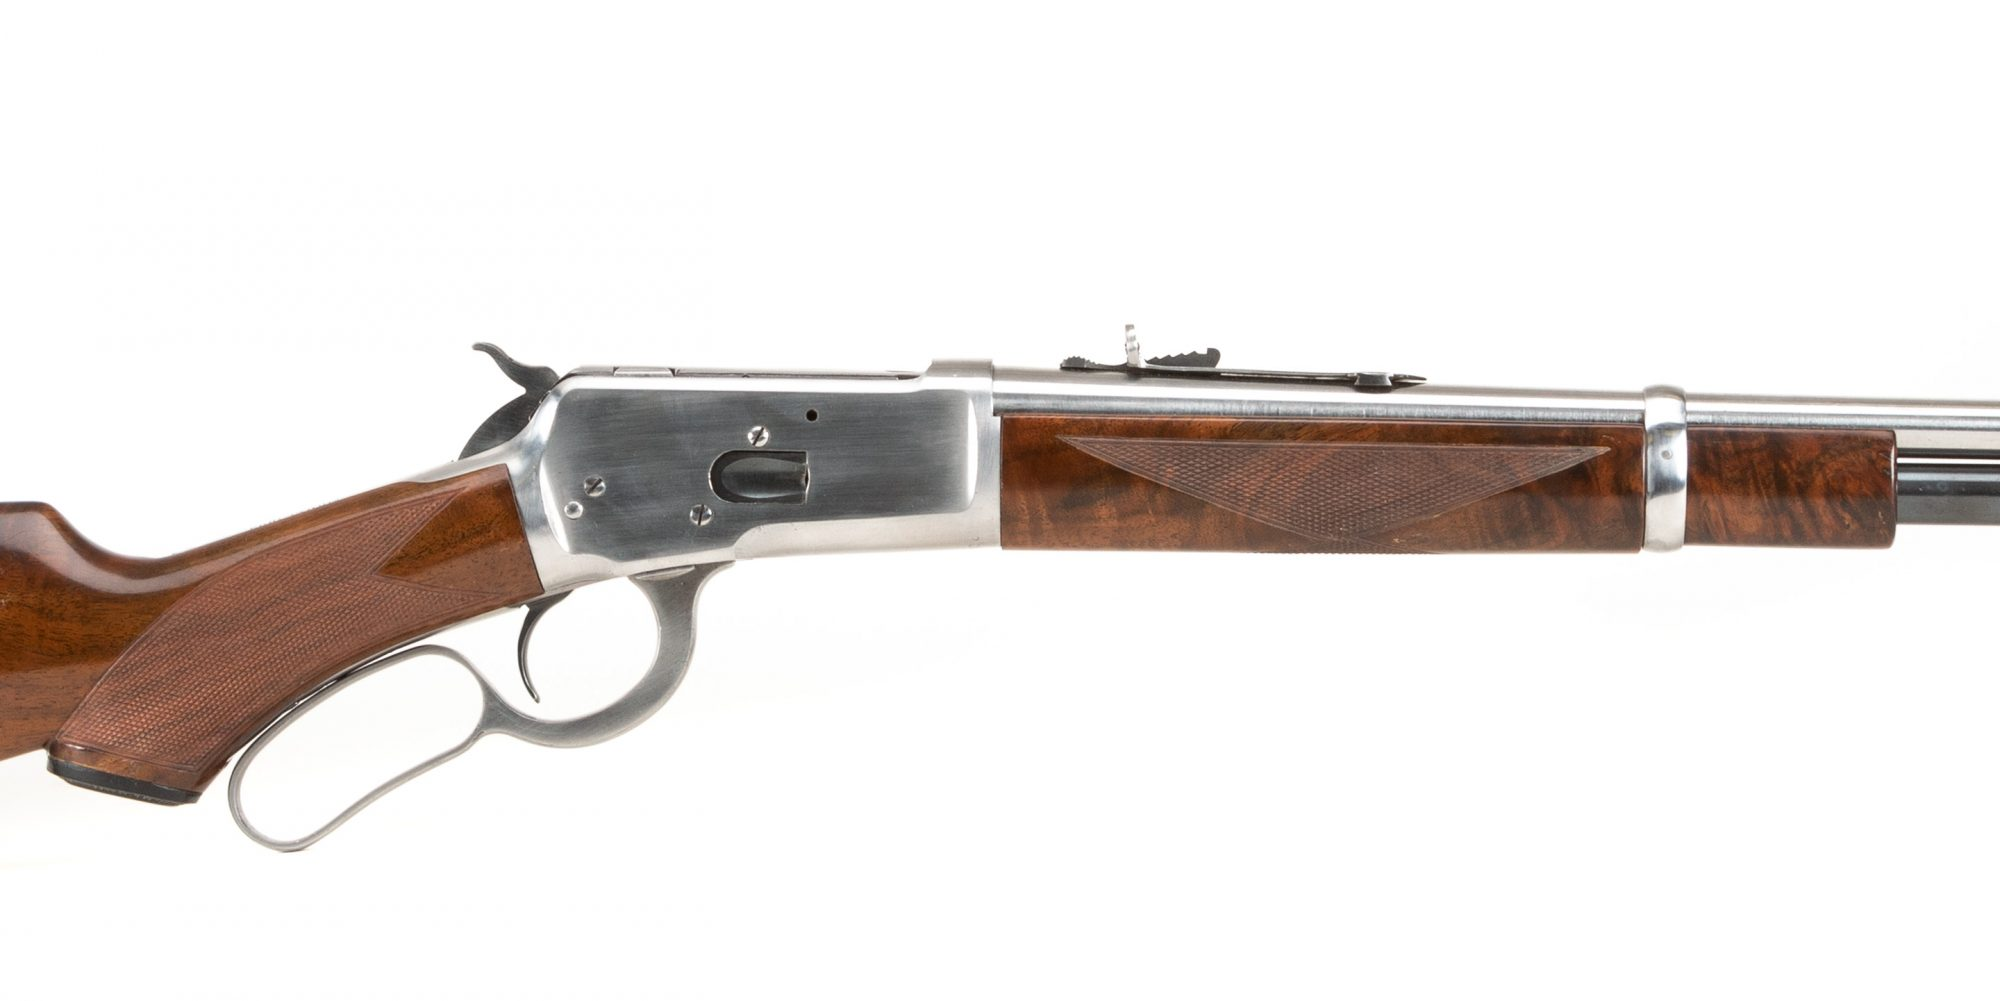 Photo of used Winchester 1892 in .44-40 Winchester